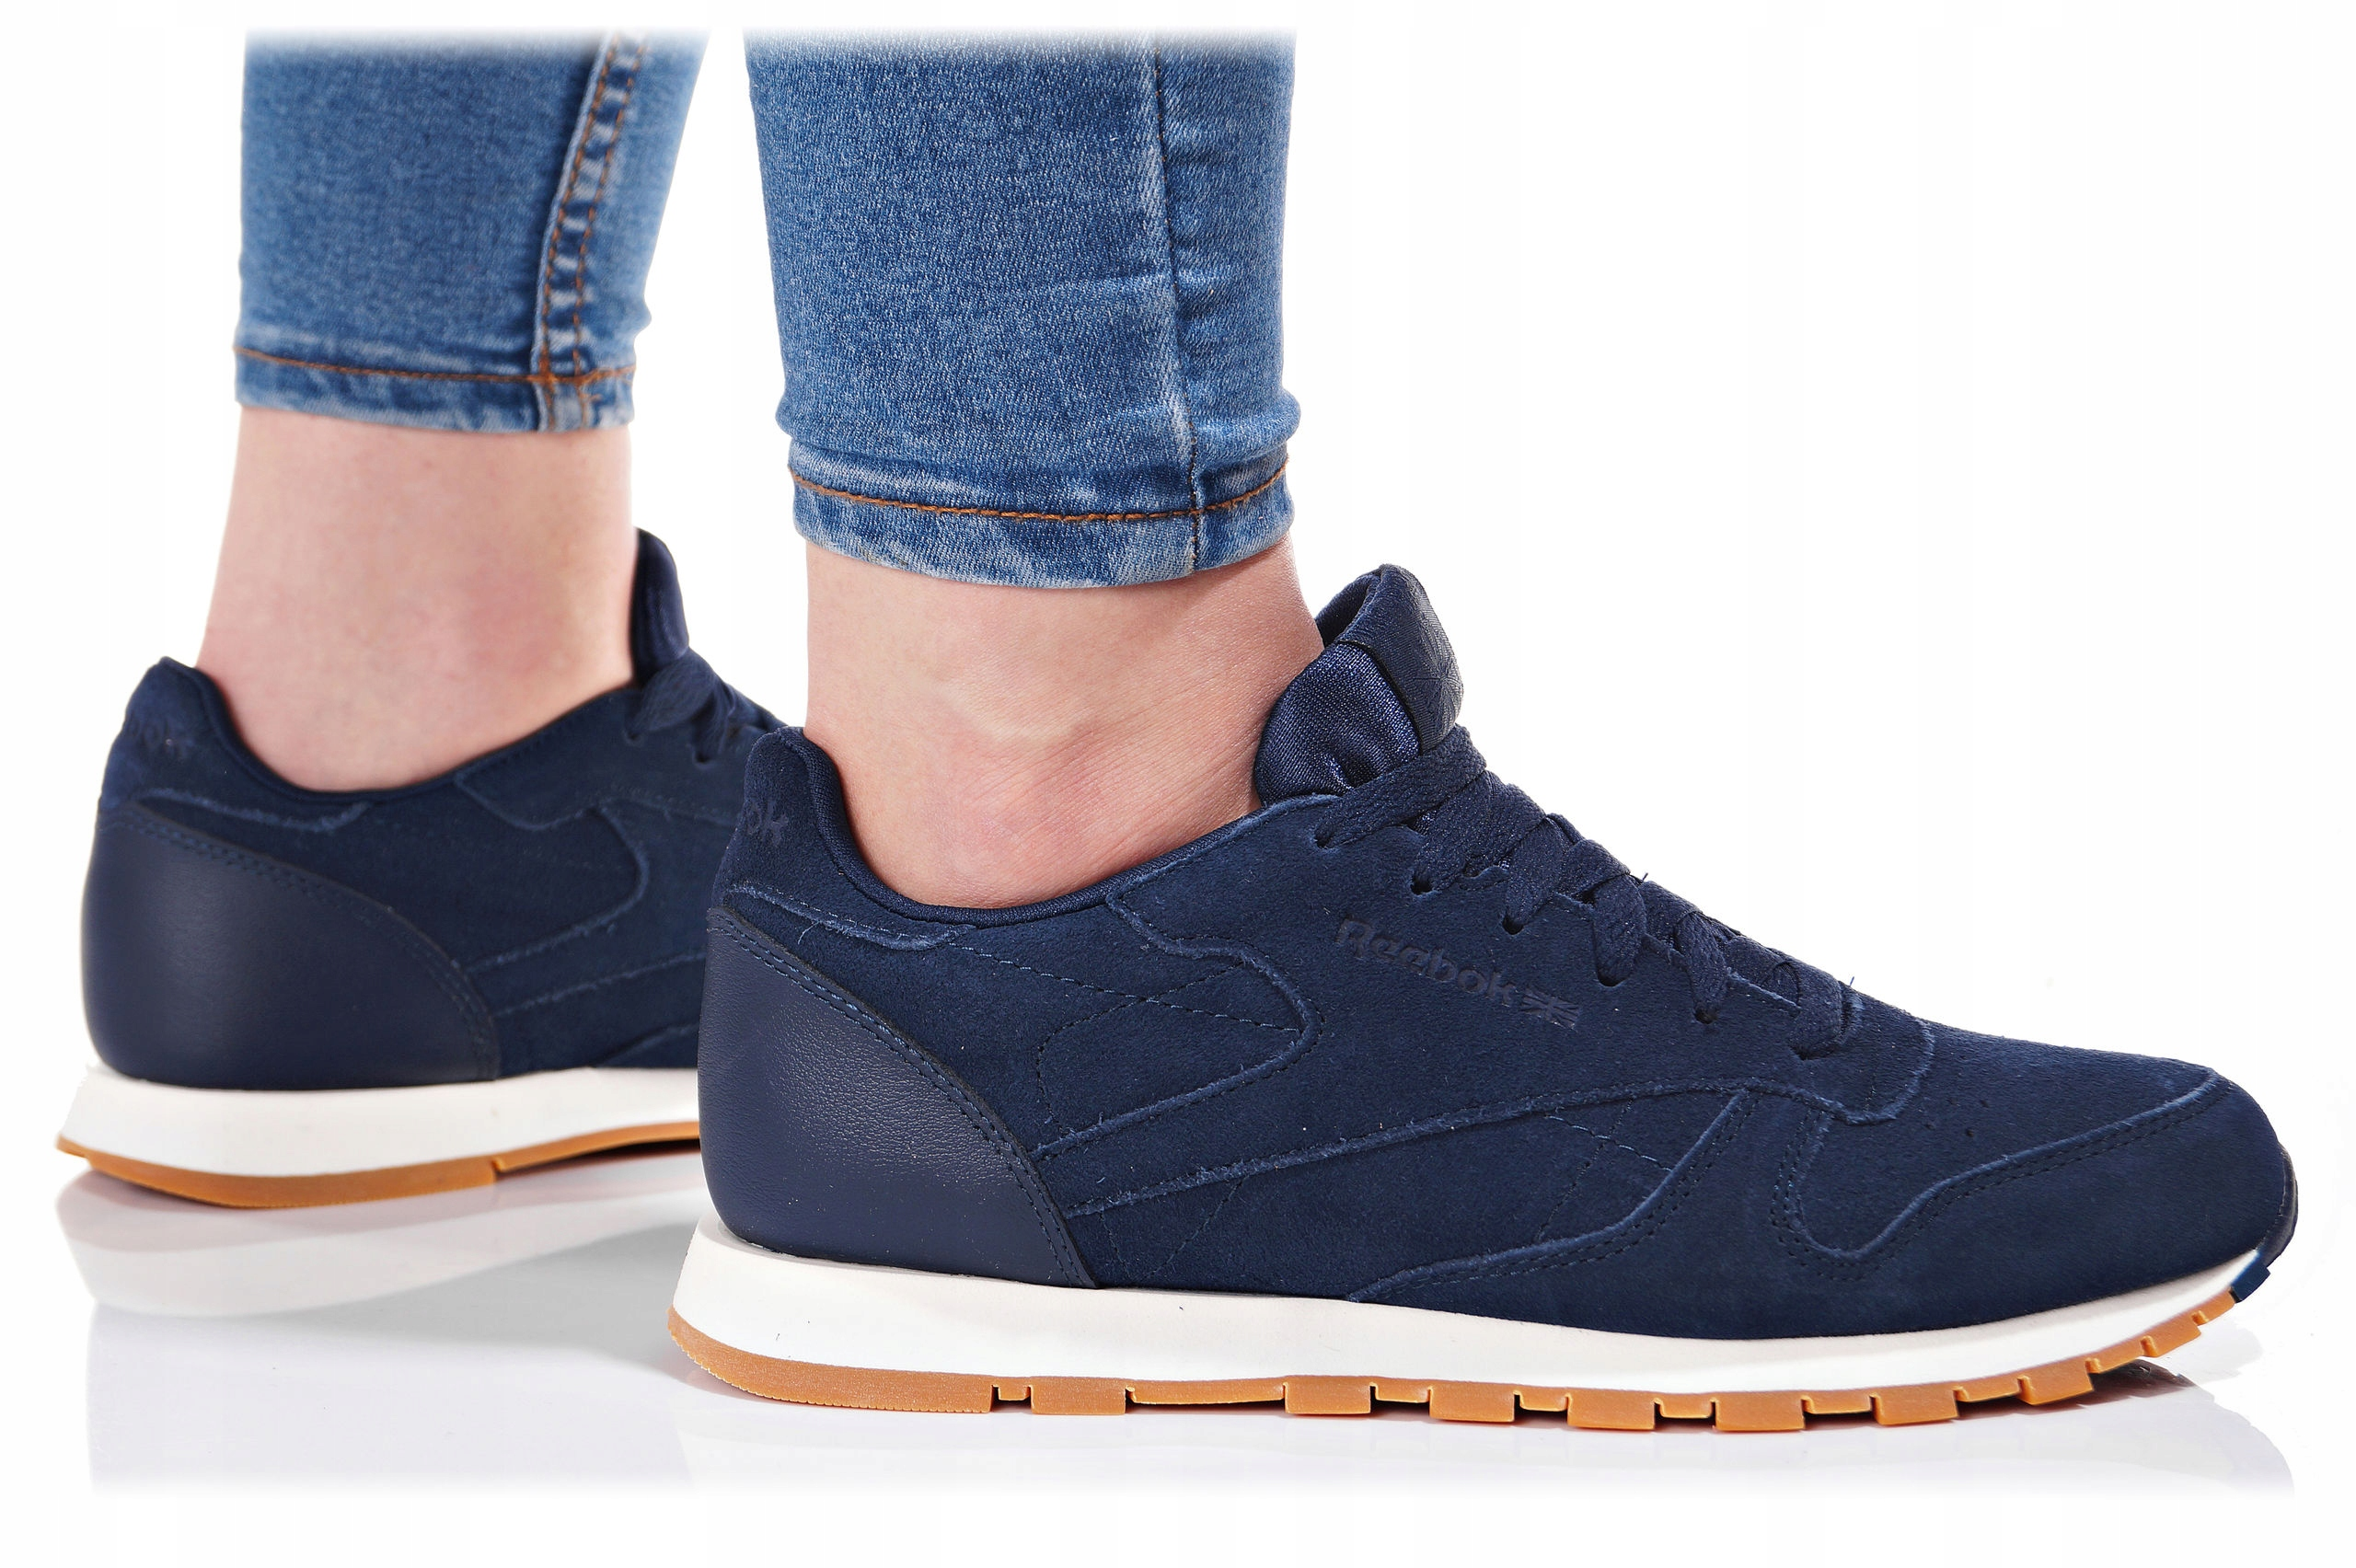 BUTY REEBOK CLASSIC LEATHER SG BS8949 R. 38 7251221551